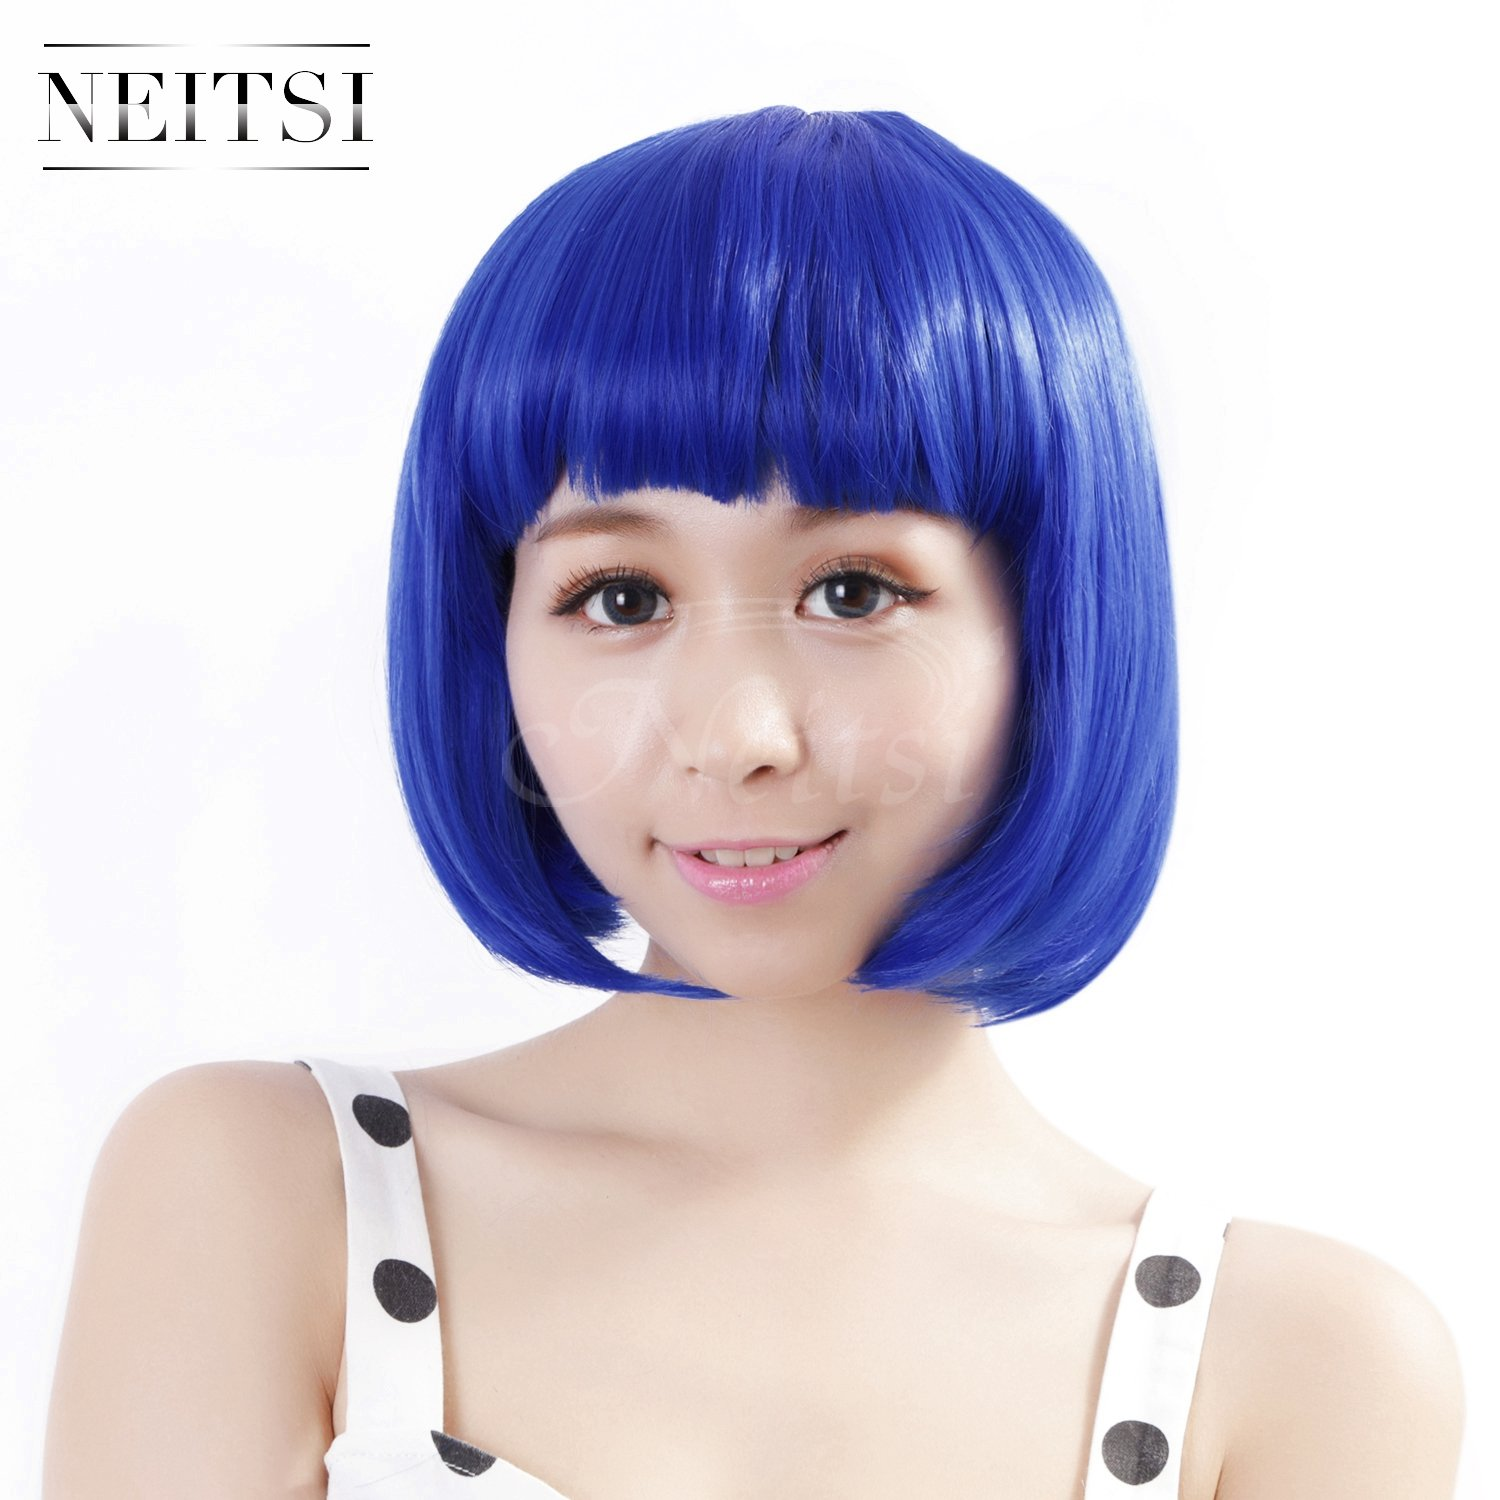 Neitsi 14 100% Kanekalon Fiber Women's Girl's Cosplay Short Synthetic BOB Hair Wigs for Christmas Party (Red) LTD